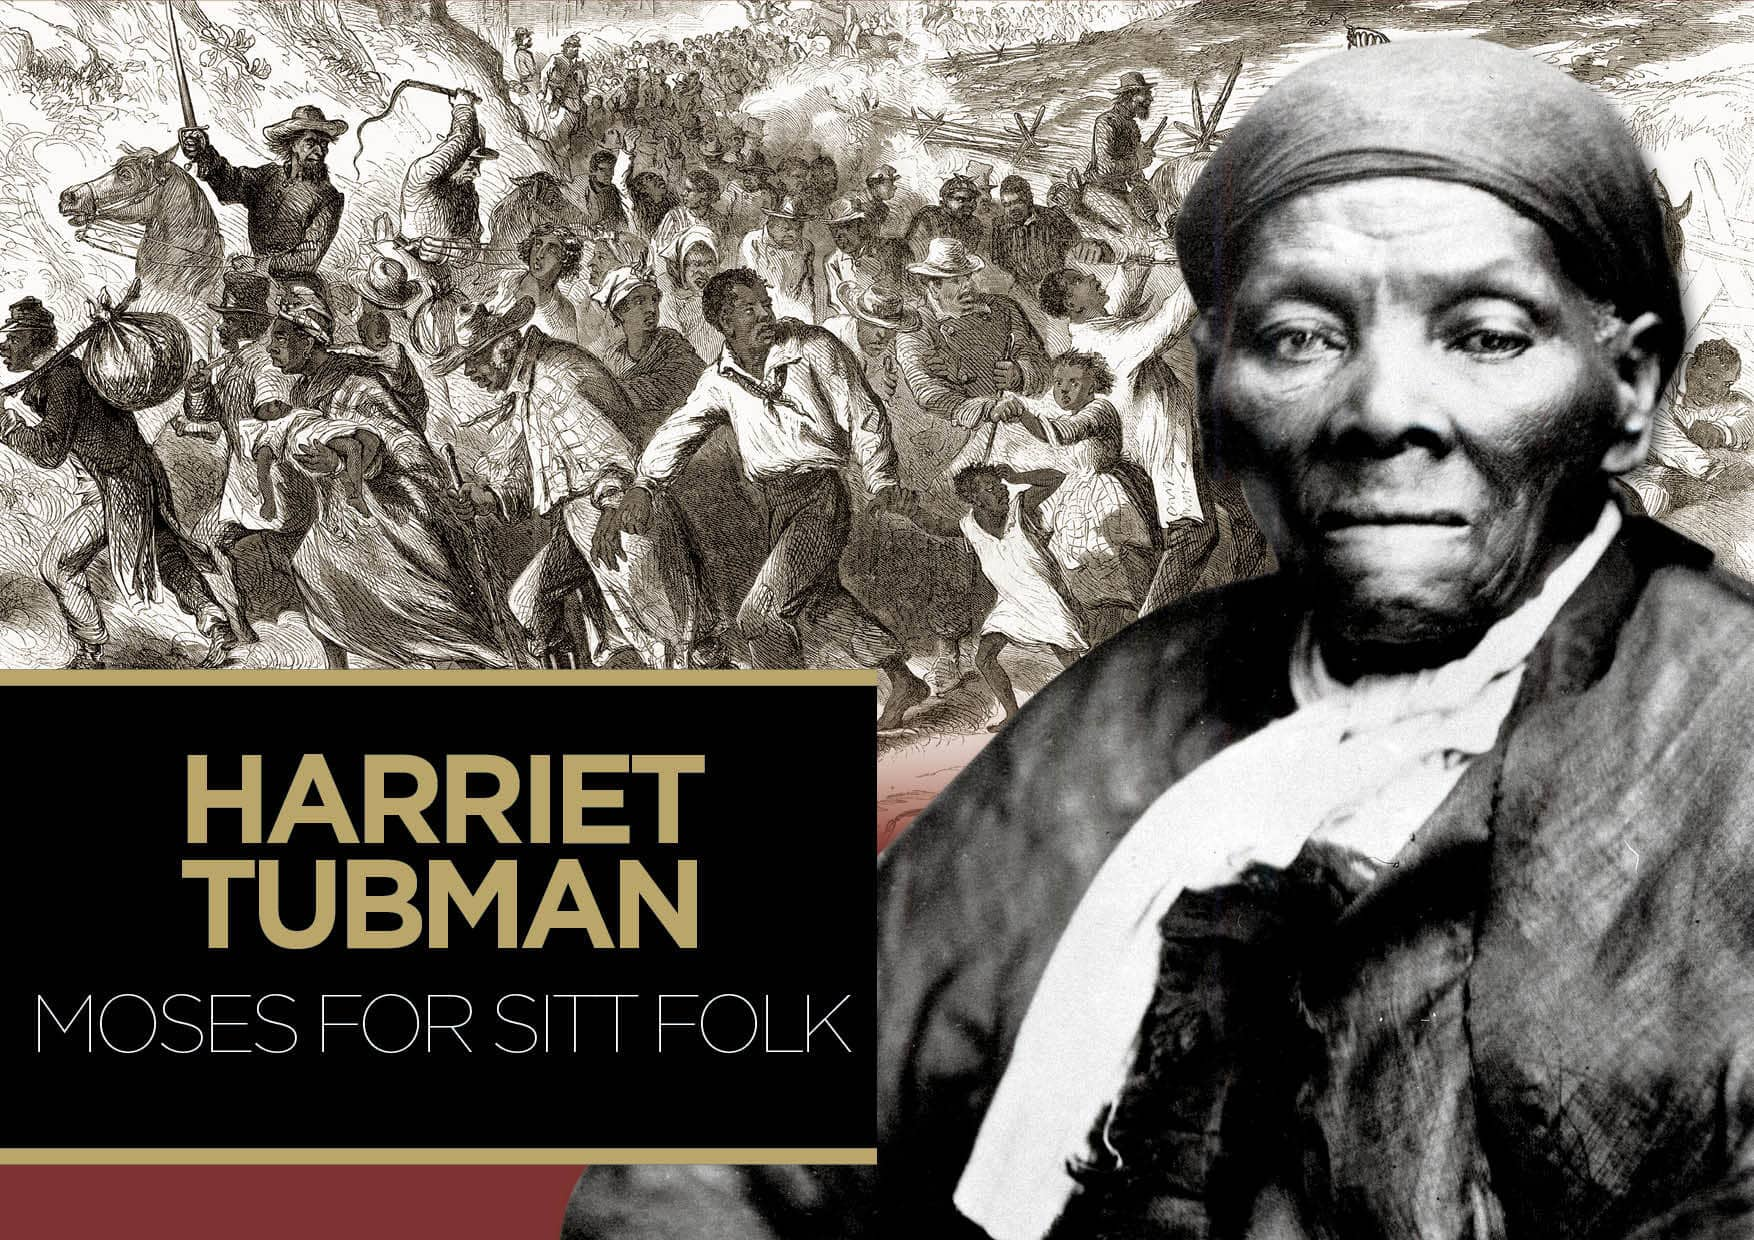 Harriet Tubman – Moses for sitt folk